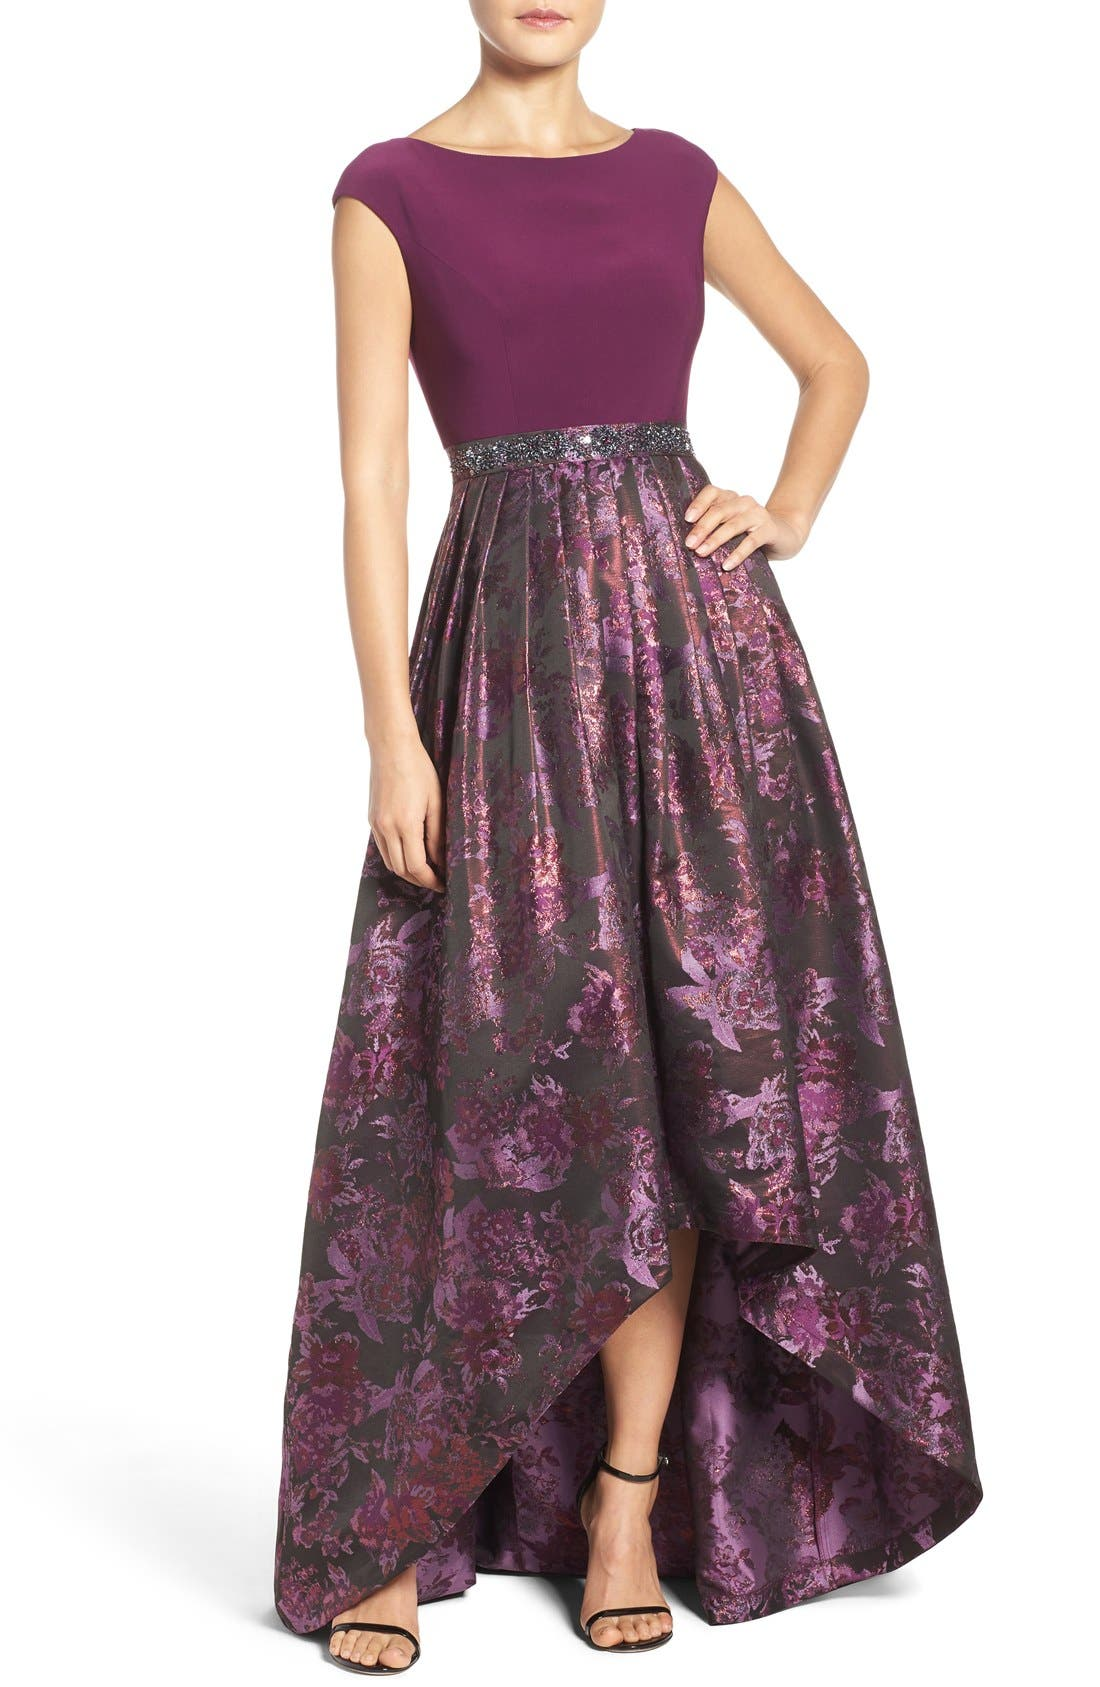 Alternate Image 1 Selected - Adrianna Papell Jersey & Jacquard Ballgown